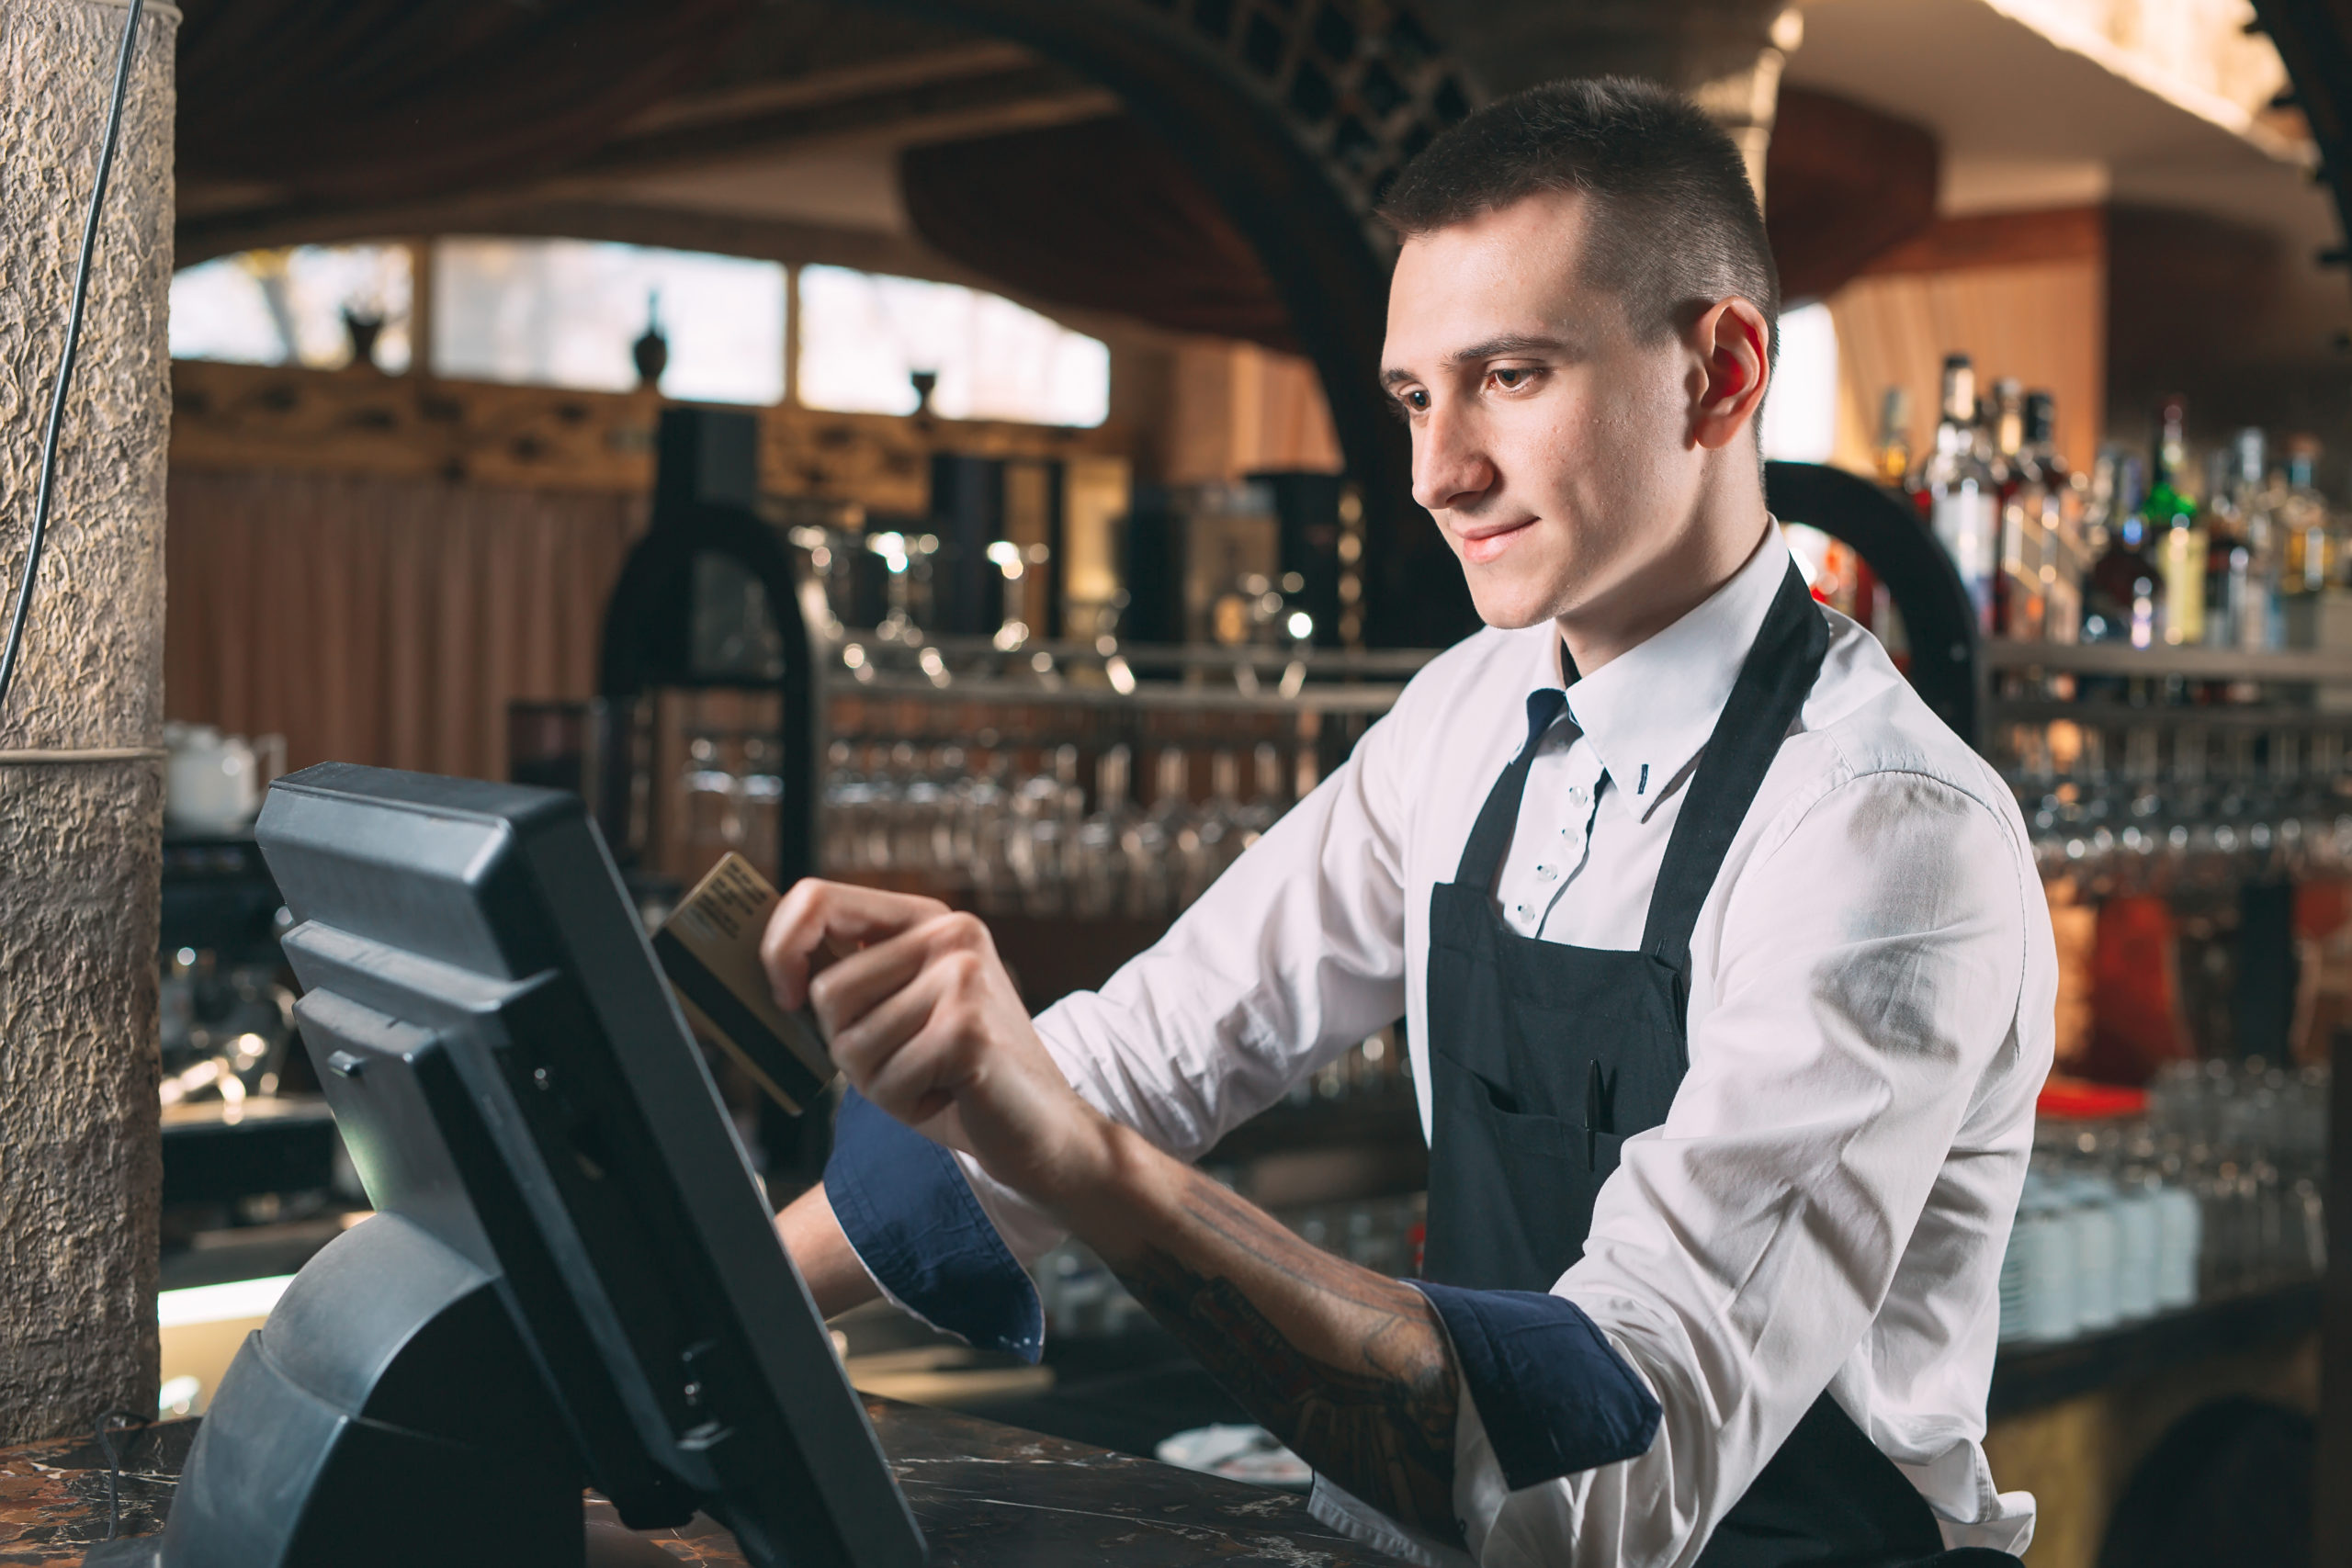 POS systems for pubs improve both customer experience and management capabilities